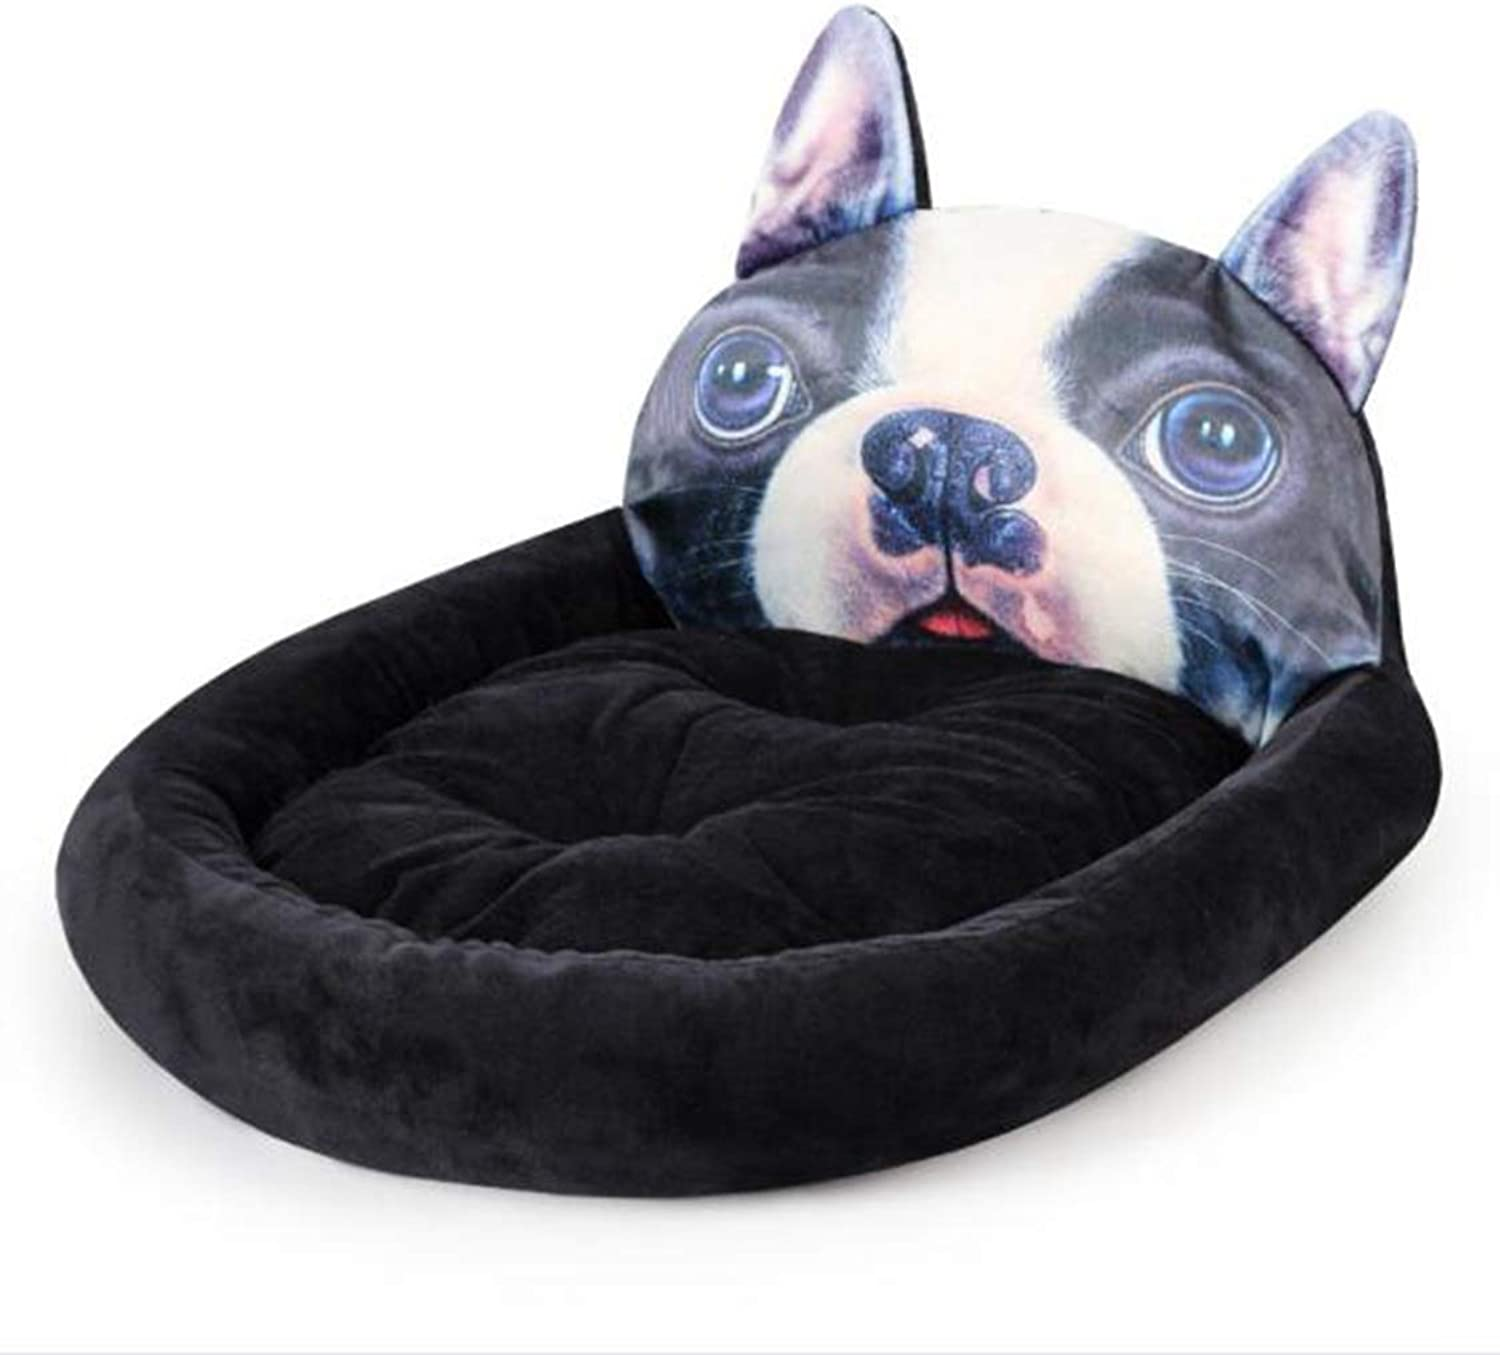 CJN Pet Bed,Cat And Dog Bed,Soft Washable Bed,Warm,3D Cartoon Shape, PP Cotton,Large (55  50  15Cm) Small (45  38  12Cm)